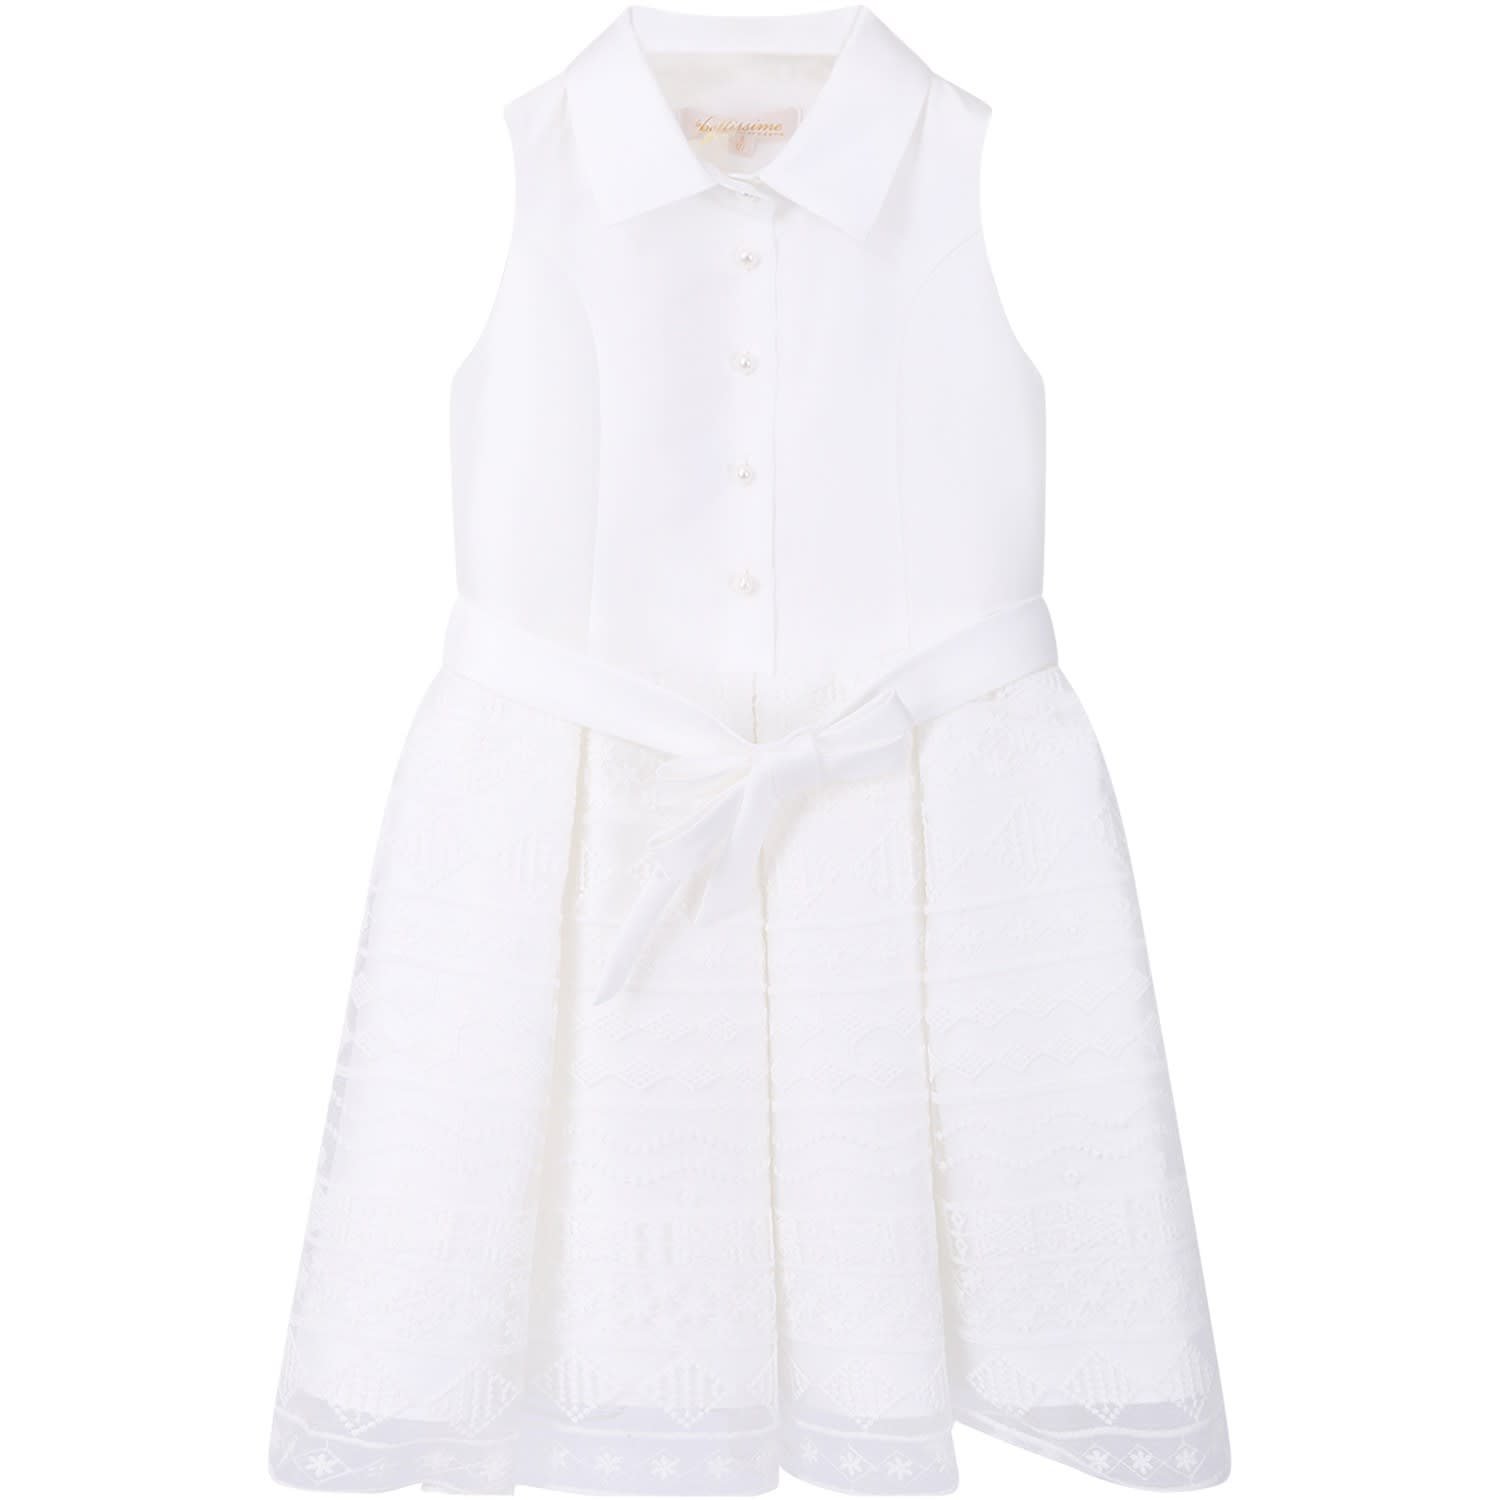 White Dress For Girl With White Embroiderd Polka-dots